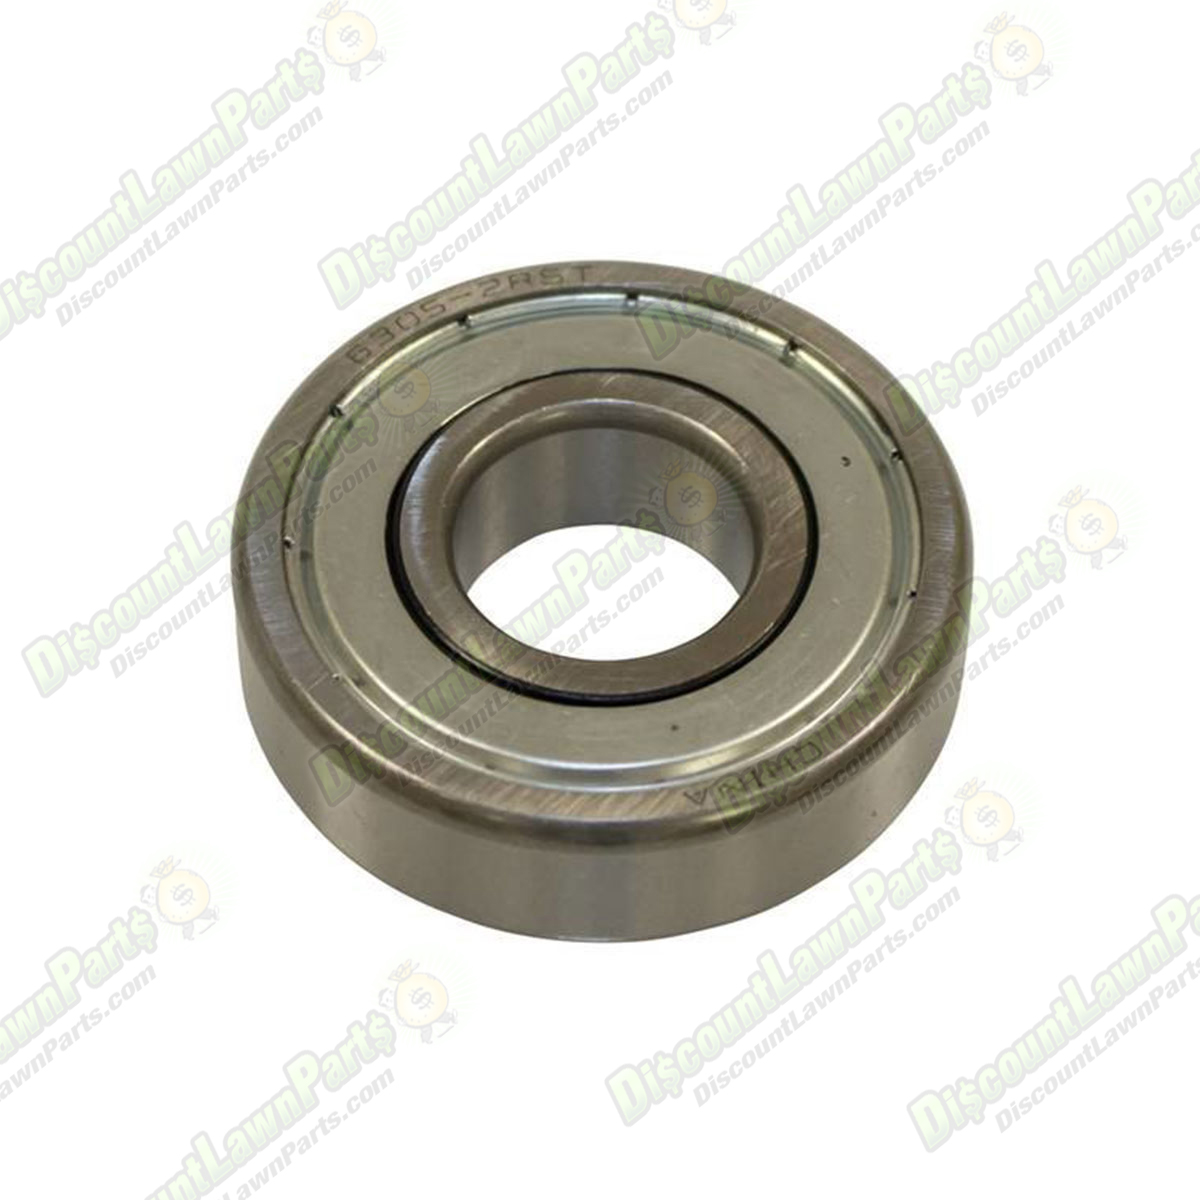 Heavy-Duty Spindle Bearing / Bobcat 35008n / Stens 230-090